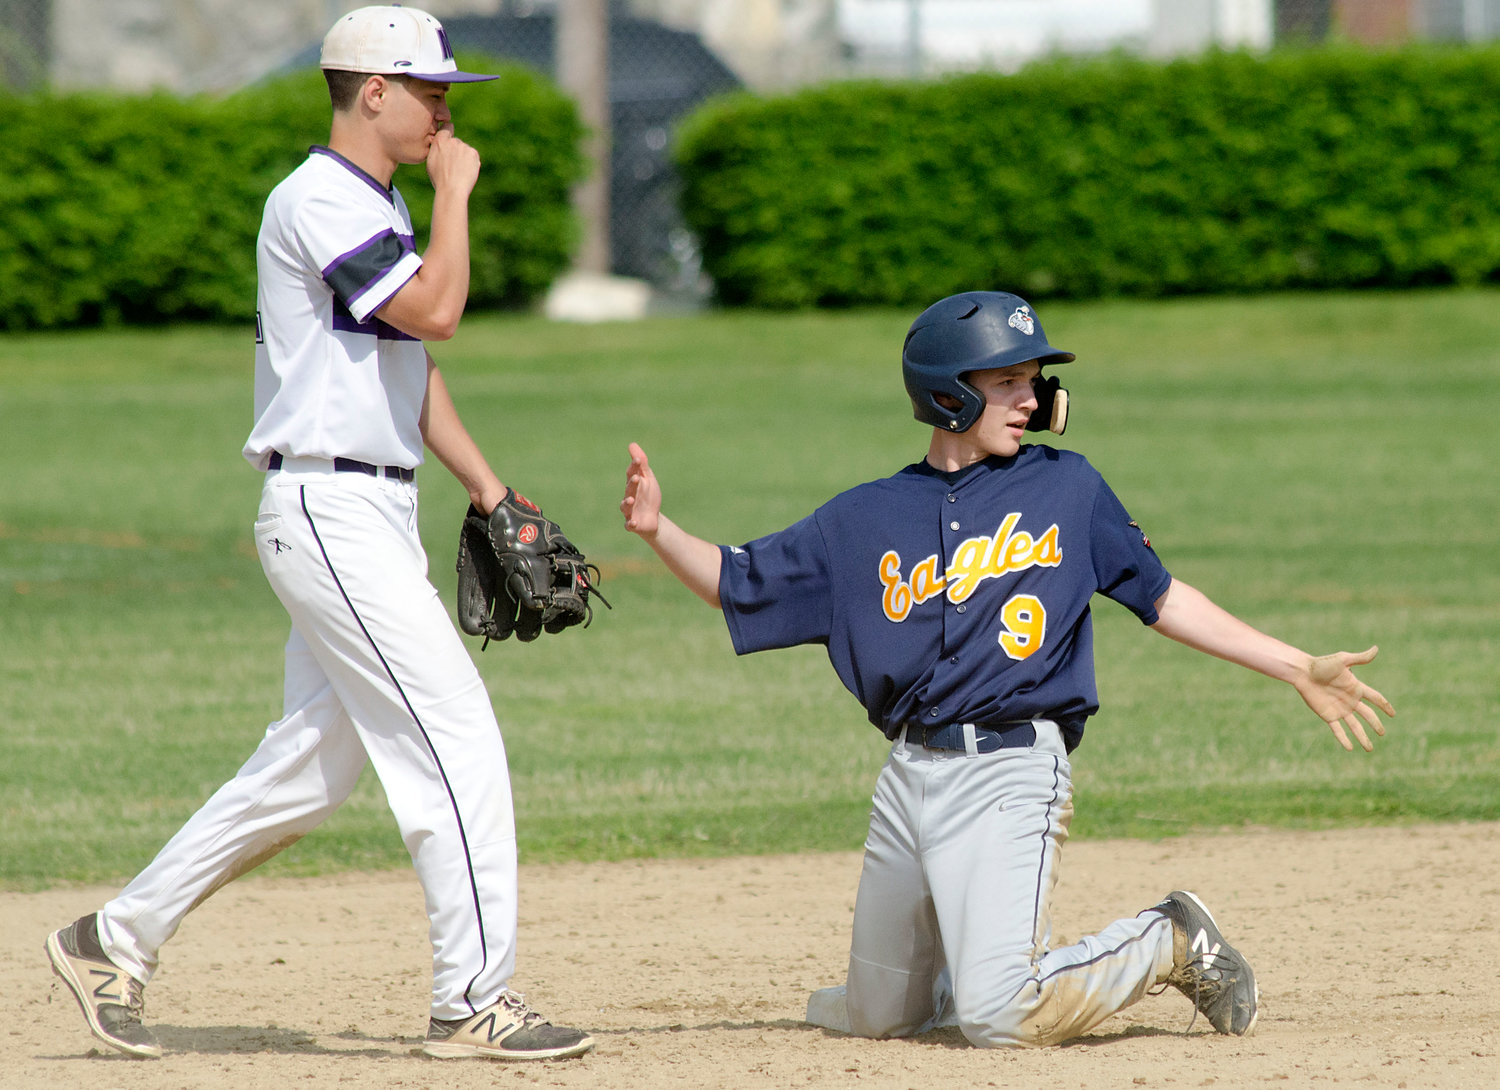 Huskies shortstop Cam Santerre blows into his hand after tagging out Eagles baserunner Sam Turner.